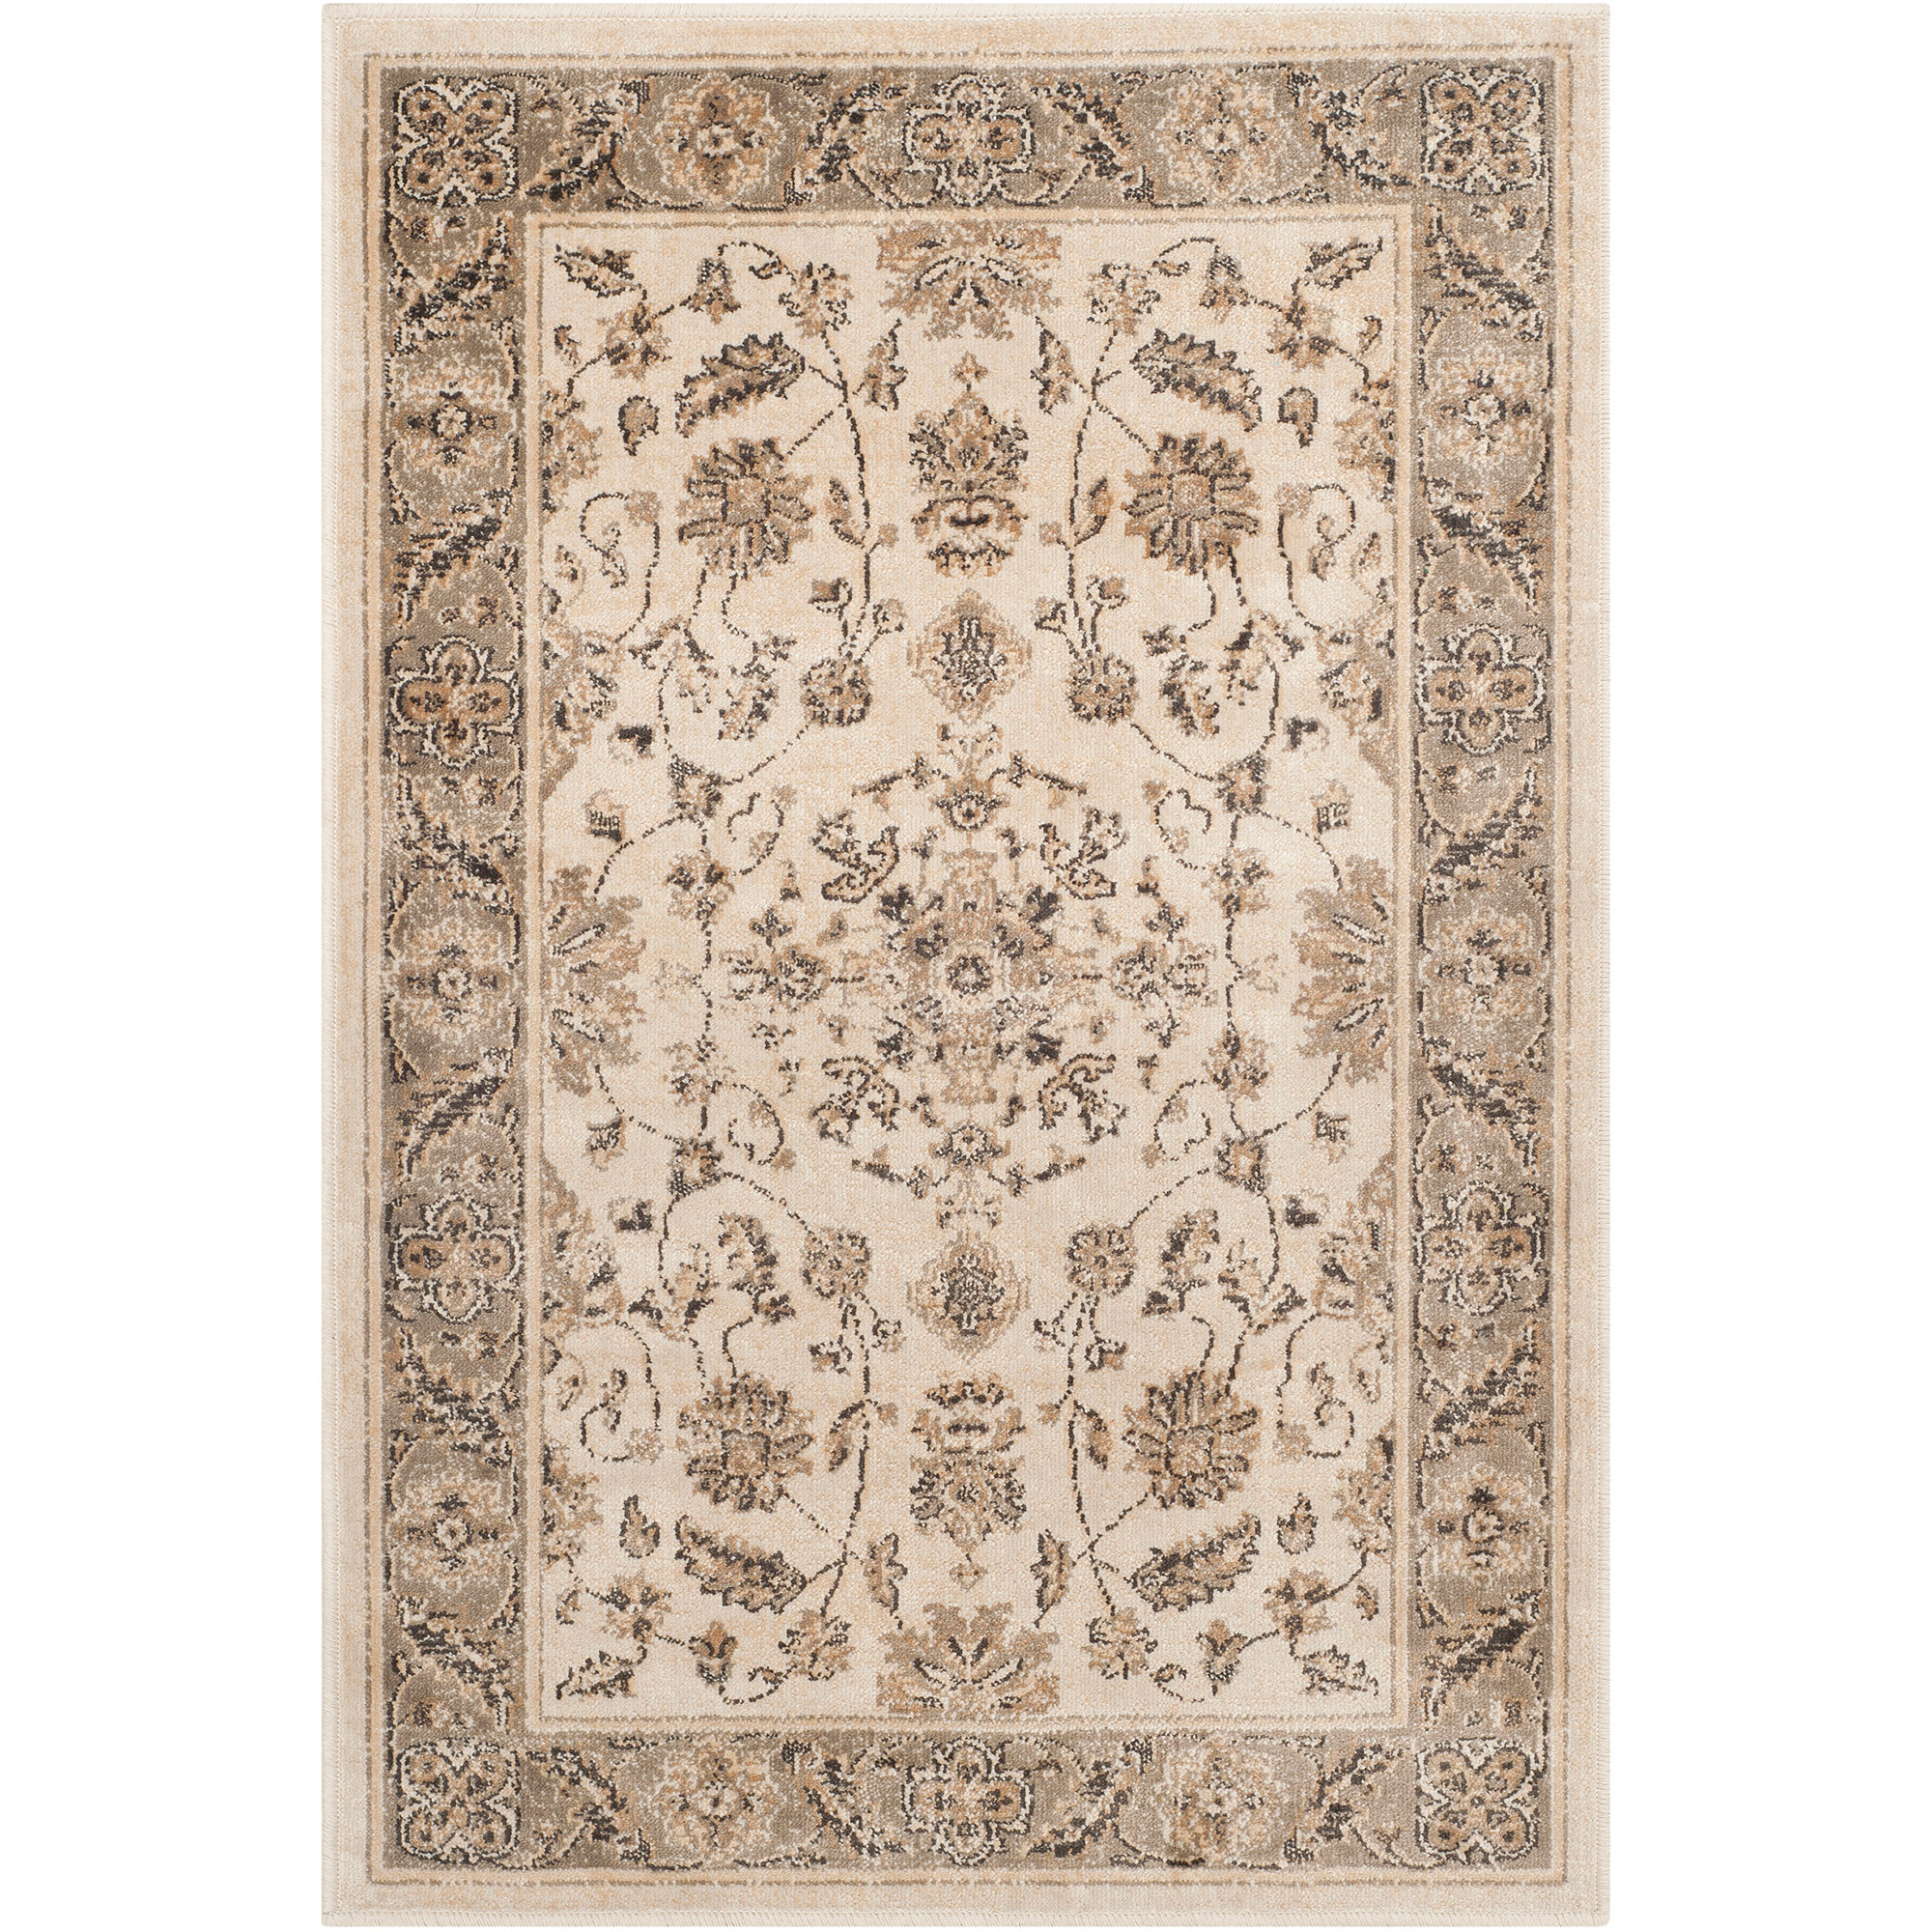 Safavieh Vintage Ifrit Traditional Area Rug or Runner